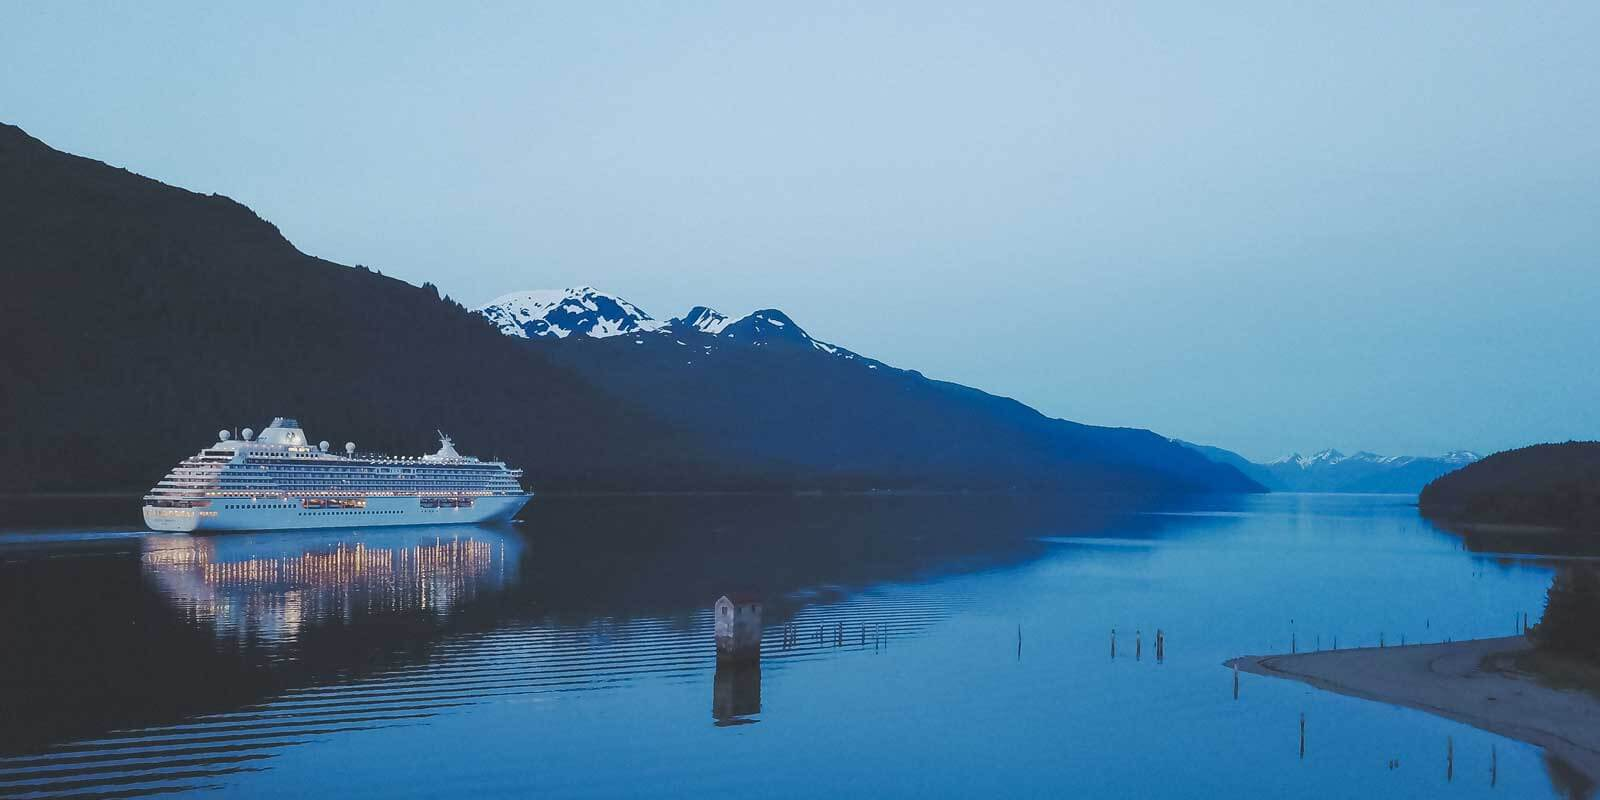 Landscape view of a cruise ship in Alaska, with snow capped mountains in the background.